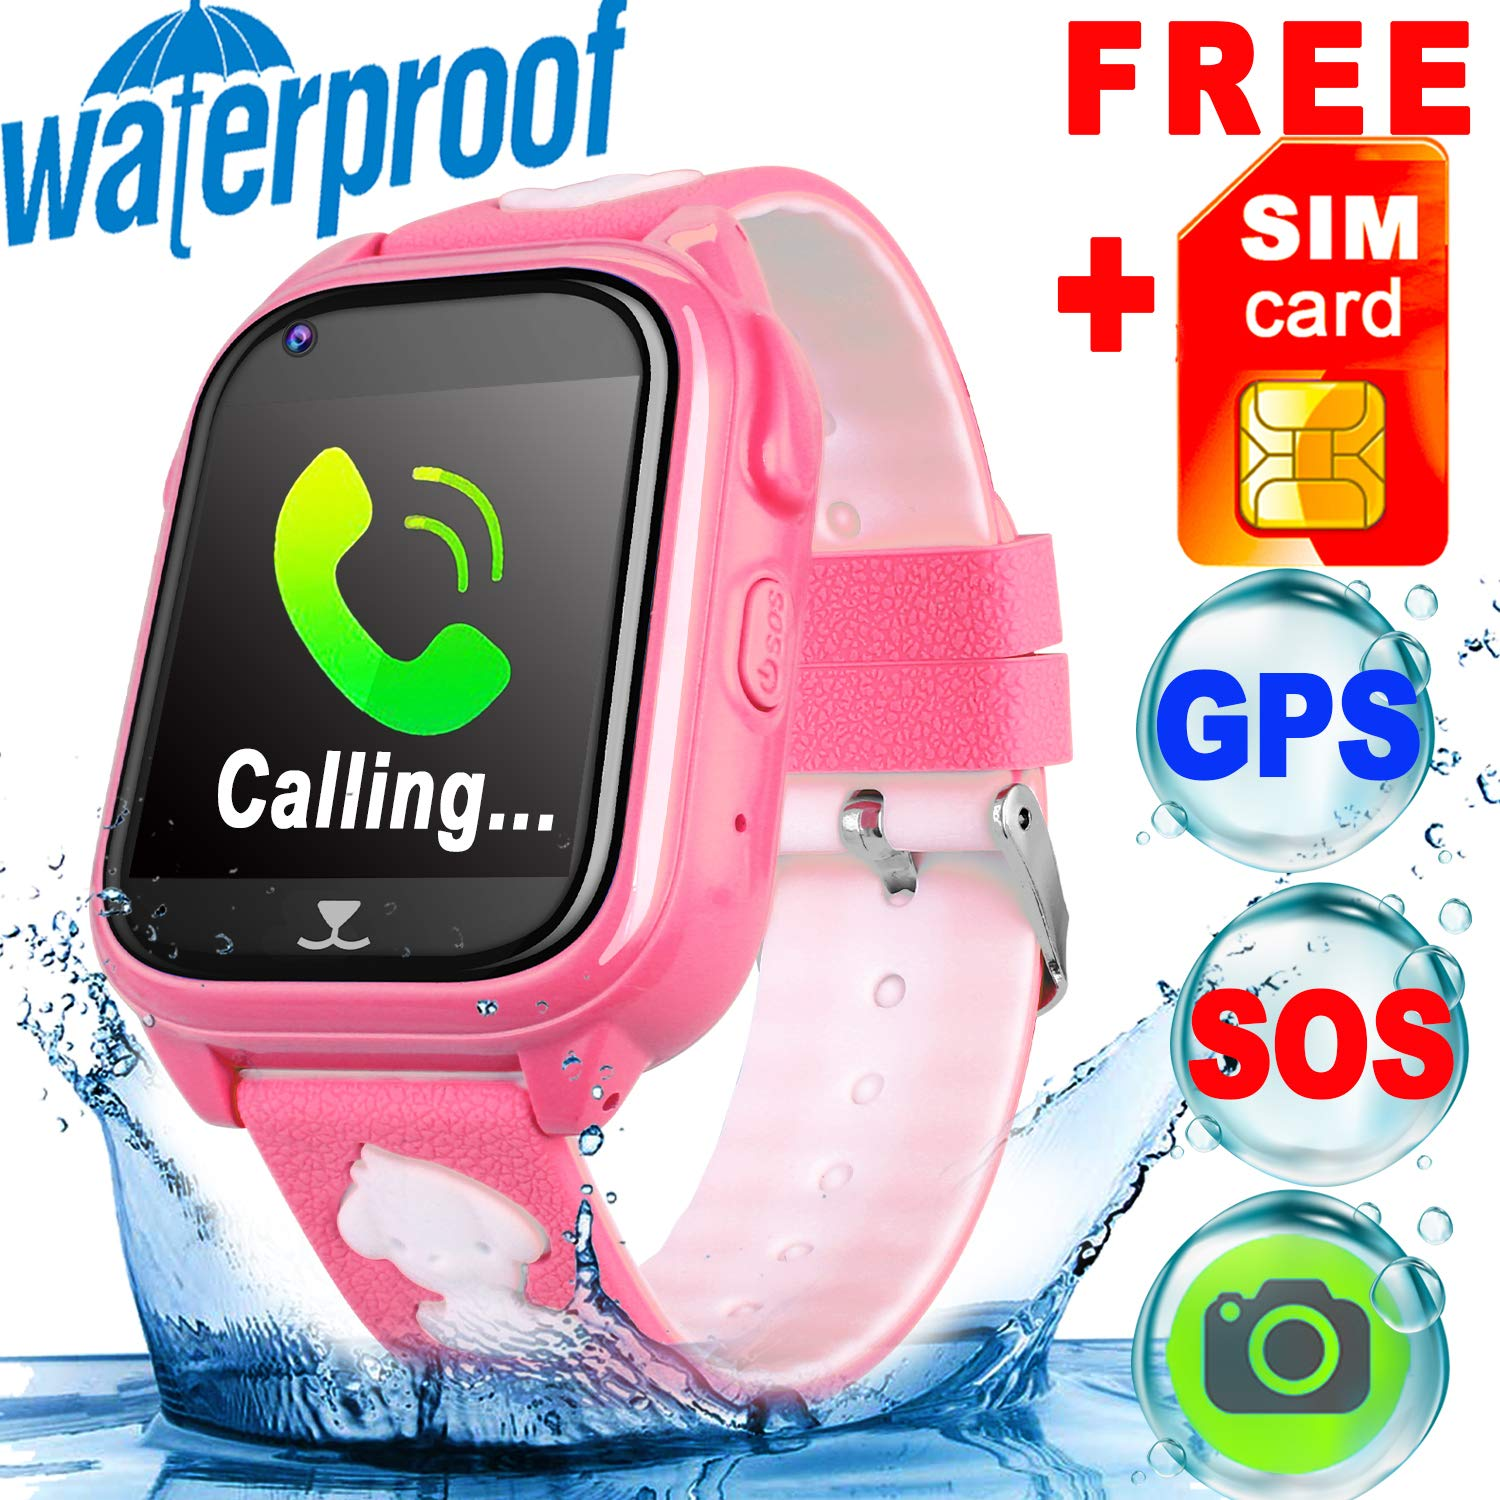 [SIM Card Included] IP68 Waterproof Kid Smart Watch Phone GPS Tracker Girls Boys Fitness Tracker SOS Camera Anti-Lost Game Sport Watch Swim Run Wrist Summer Outdoor Live Mobile App iOS/Android